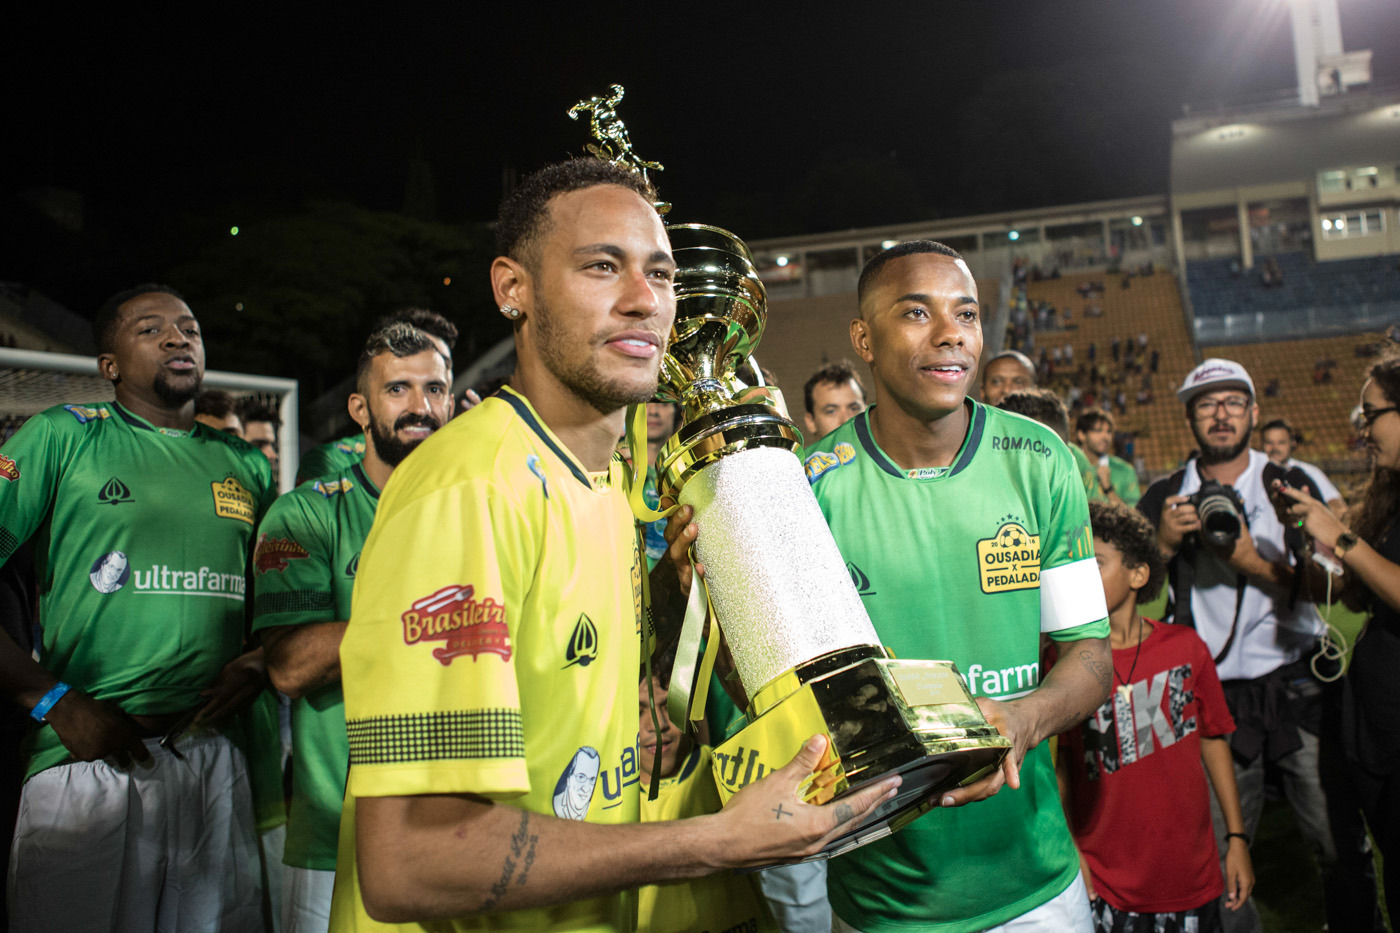 Neymar Jr. and Robinho put on a show in their charitable game e150a3180dec6